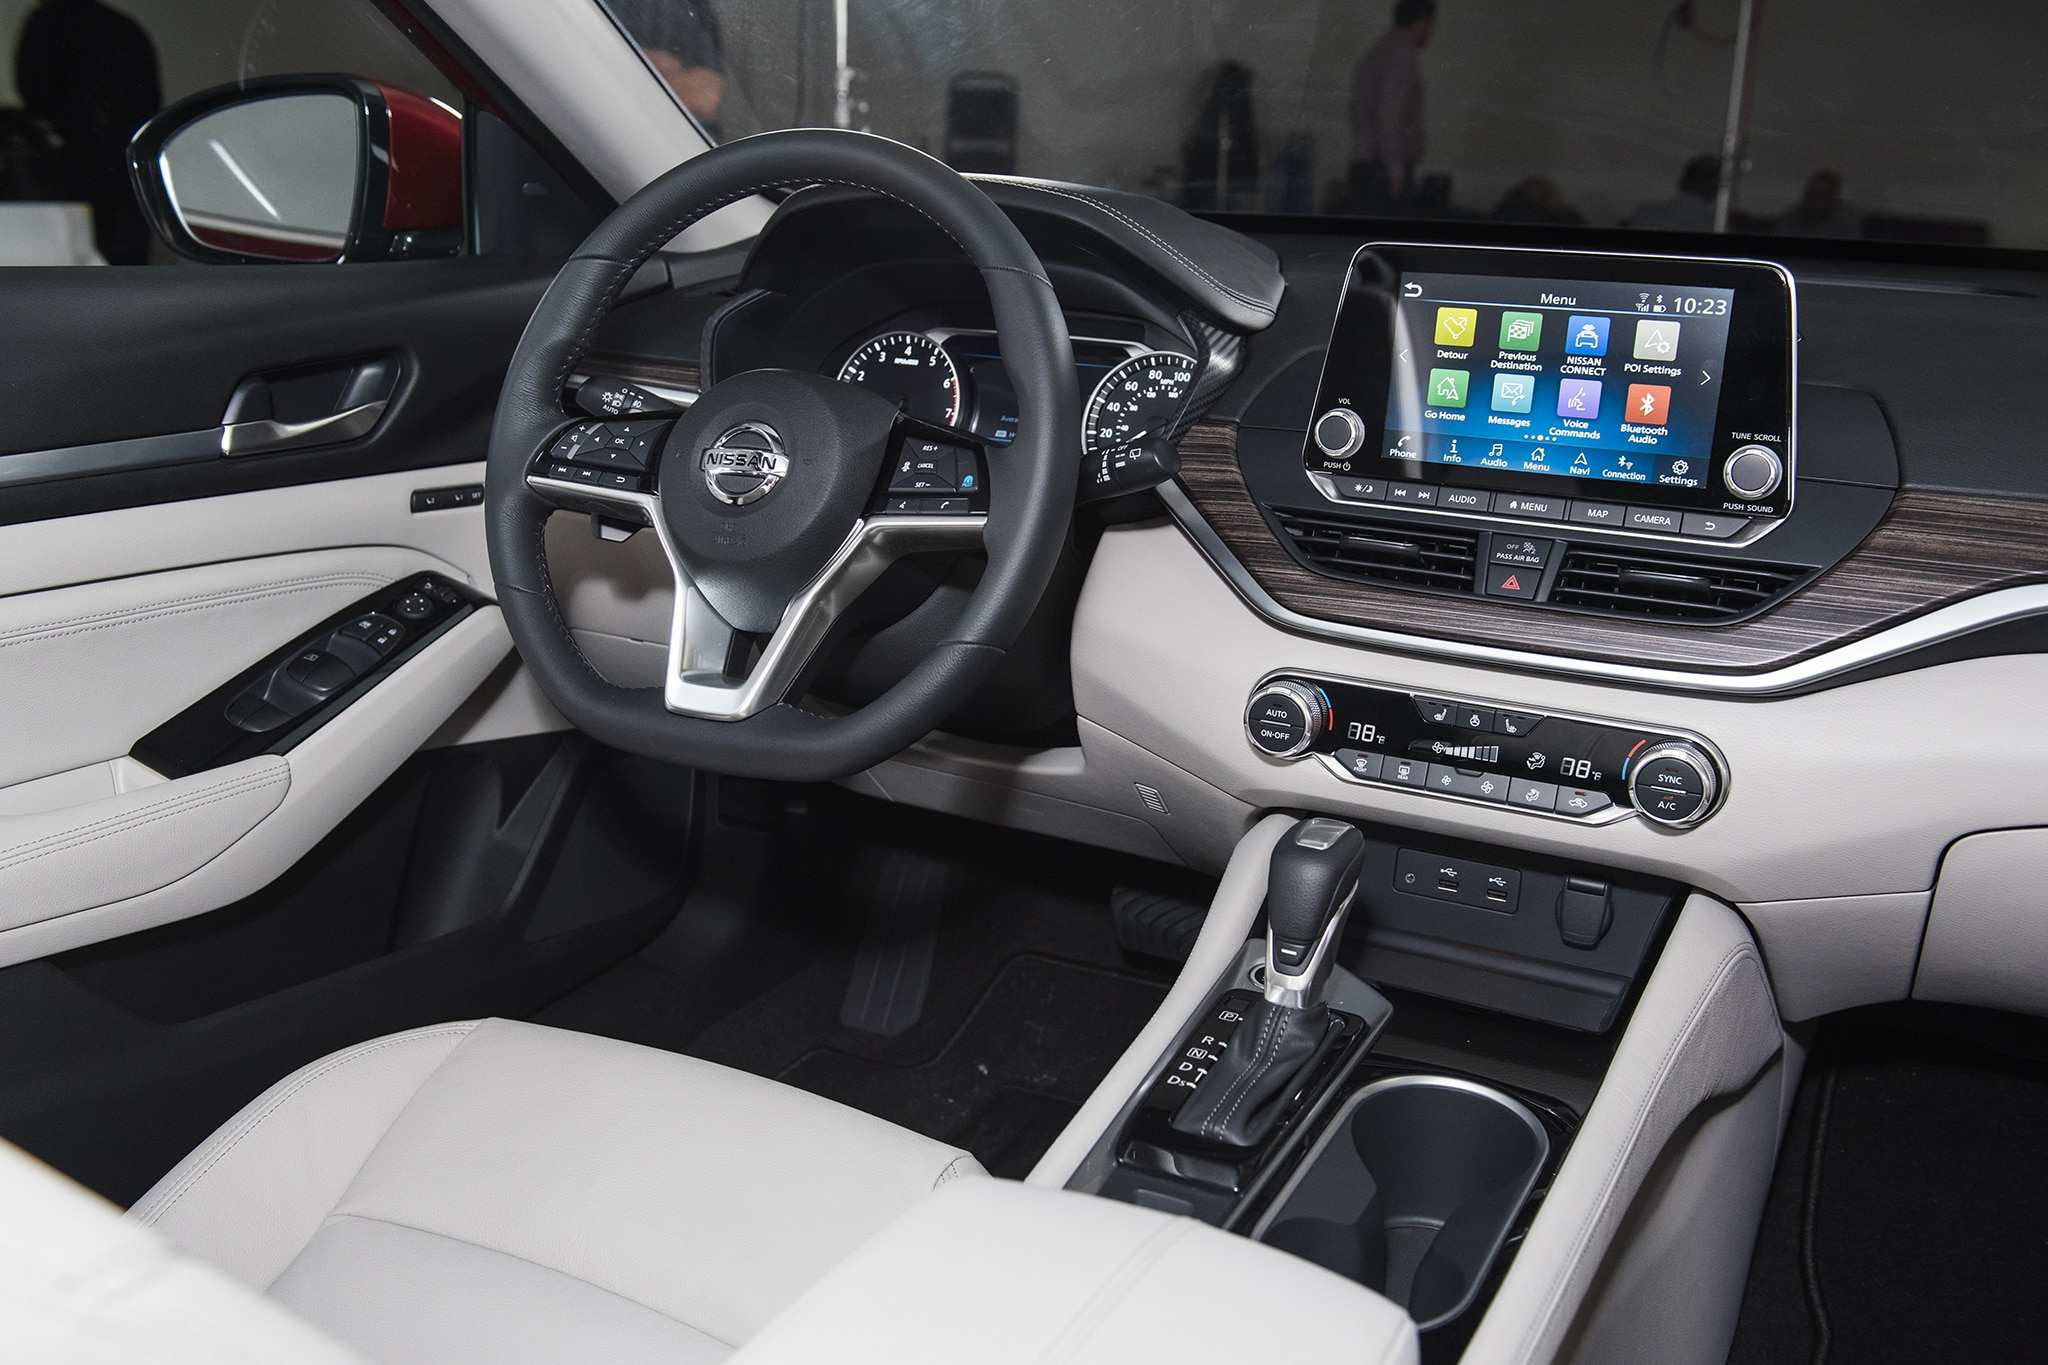 78 The Best 2020 Nissan Altima Interior Redesign And Review